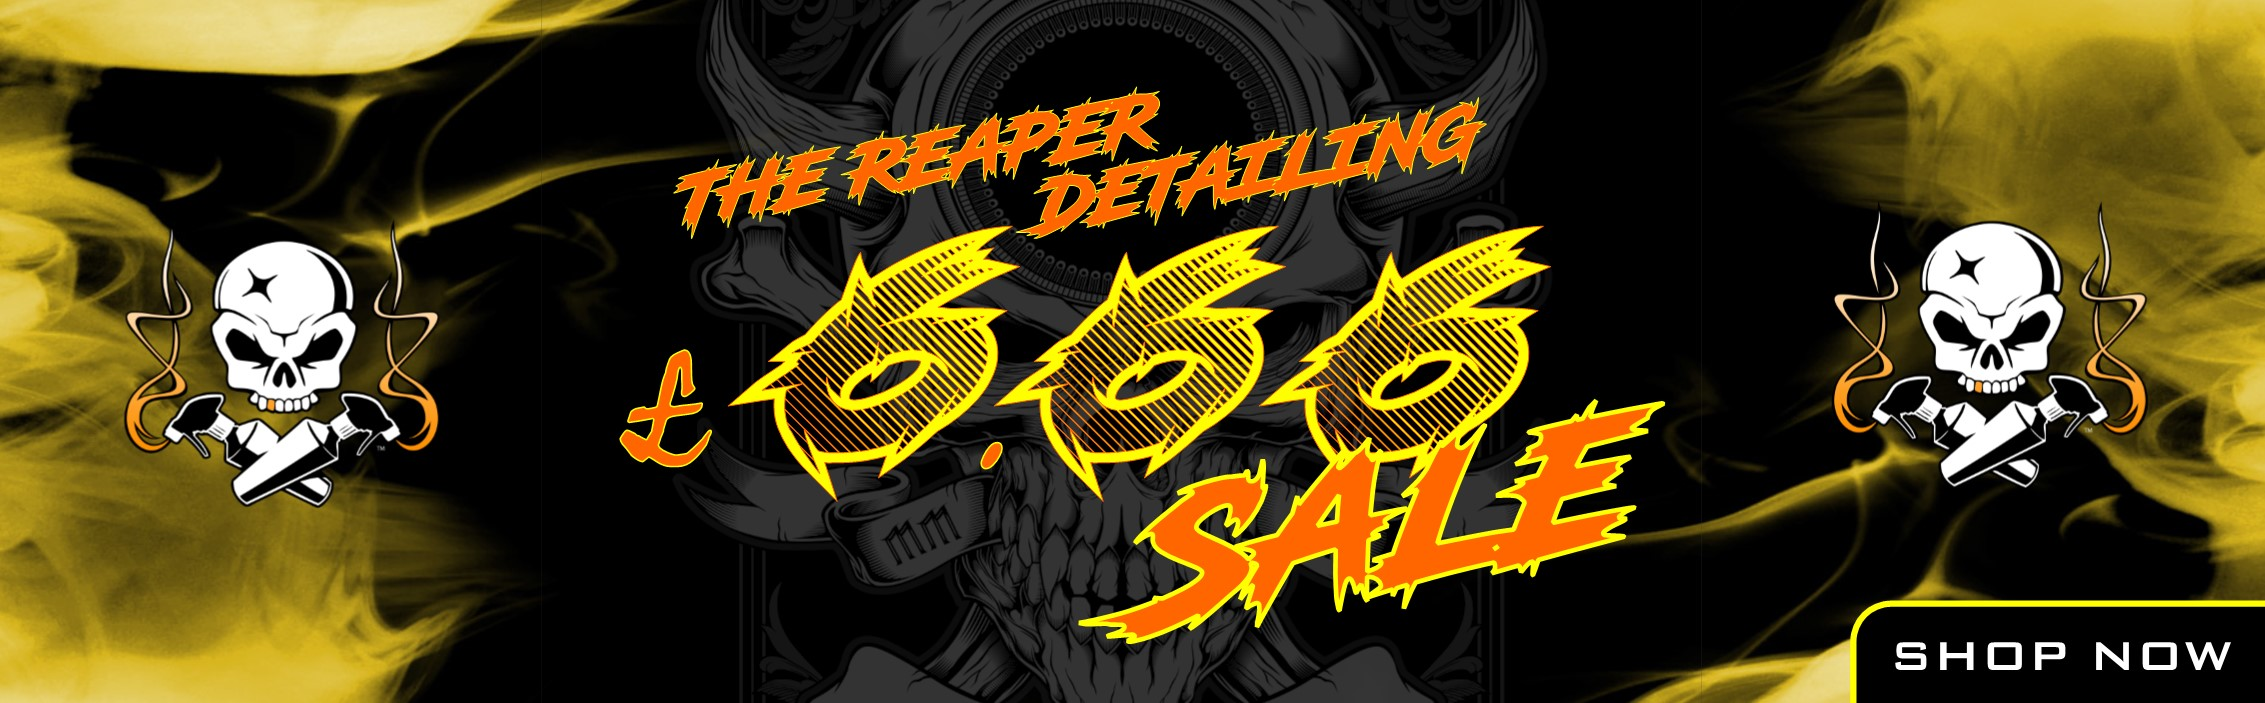 Detailing Products 666 Sale